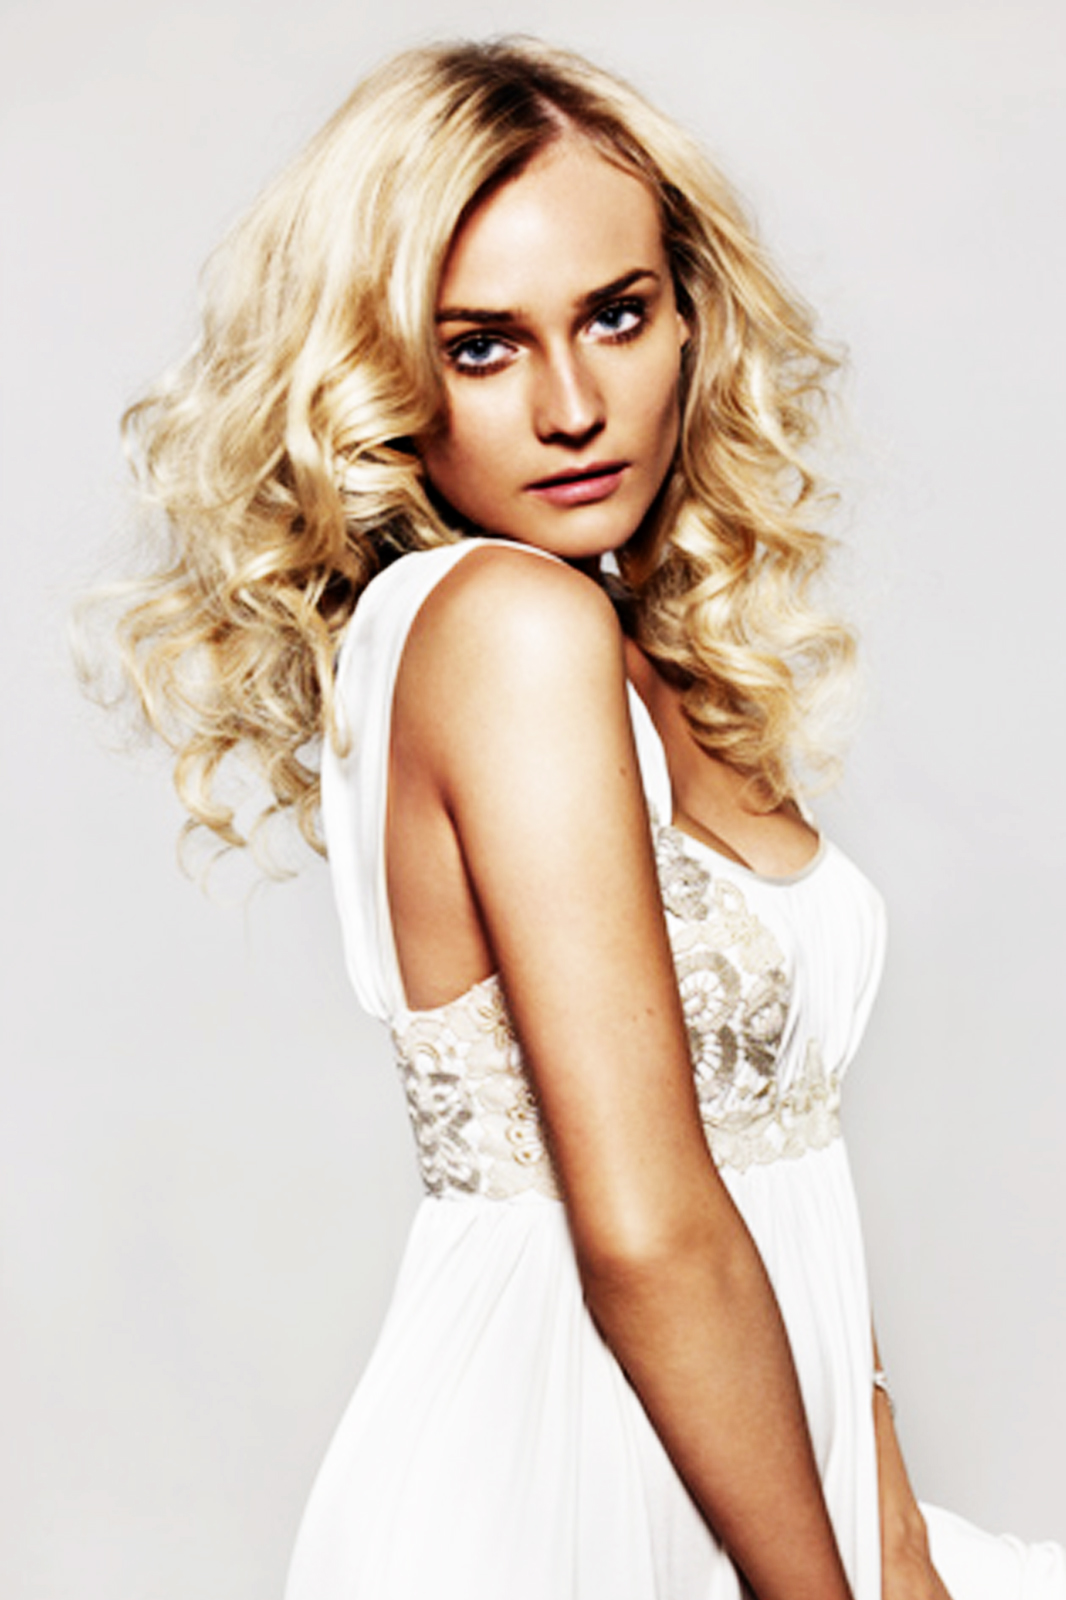 http://3.bp.blogspot.com/-YThT6-Ft9s0/UAbQ6Jh07nI/AAAAAAAAB_0/iM6tO9jlKlw/s1600/Diane-Kruger-Latest-Pictures-3.jpg